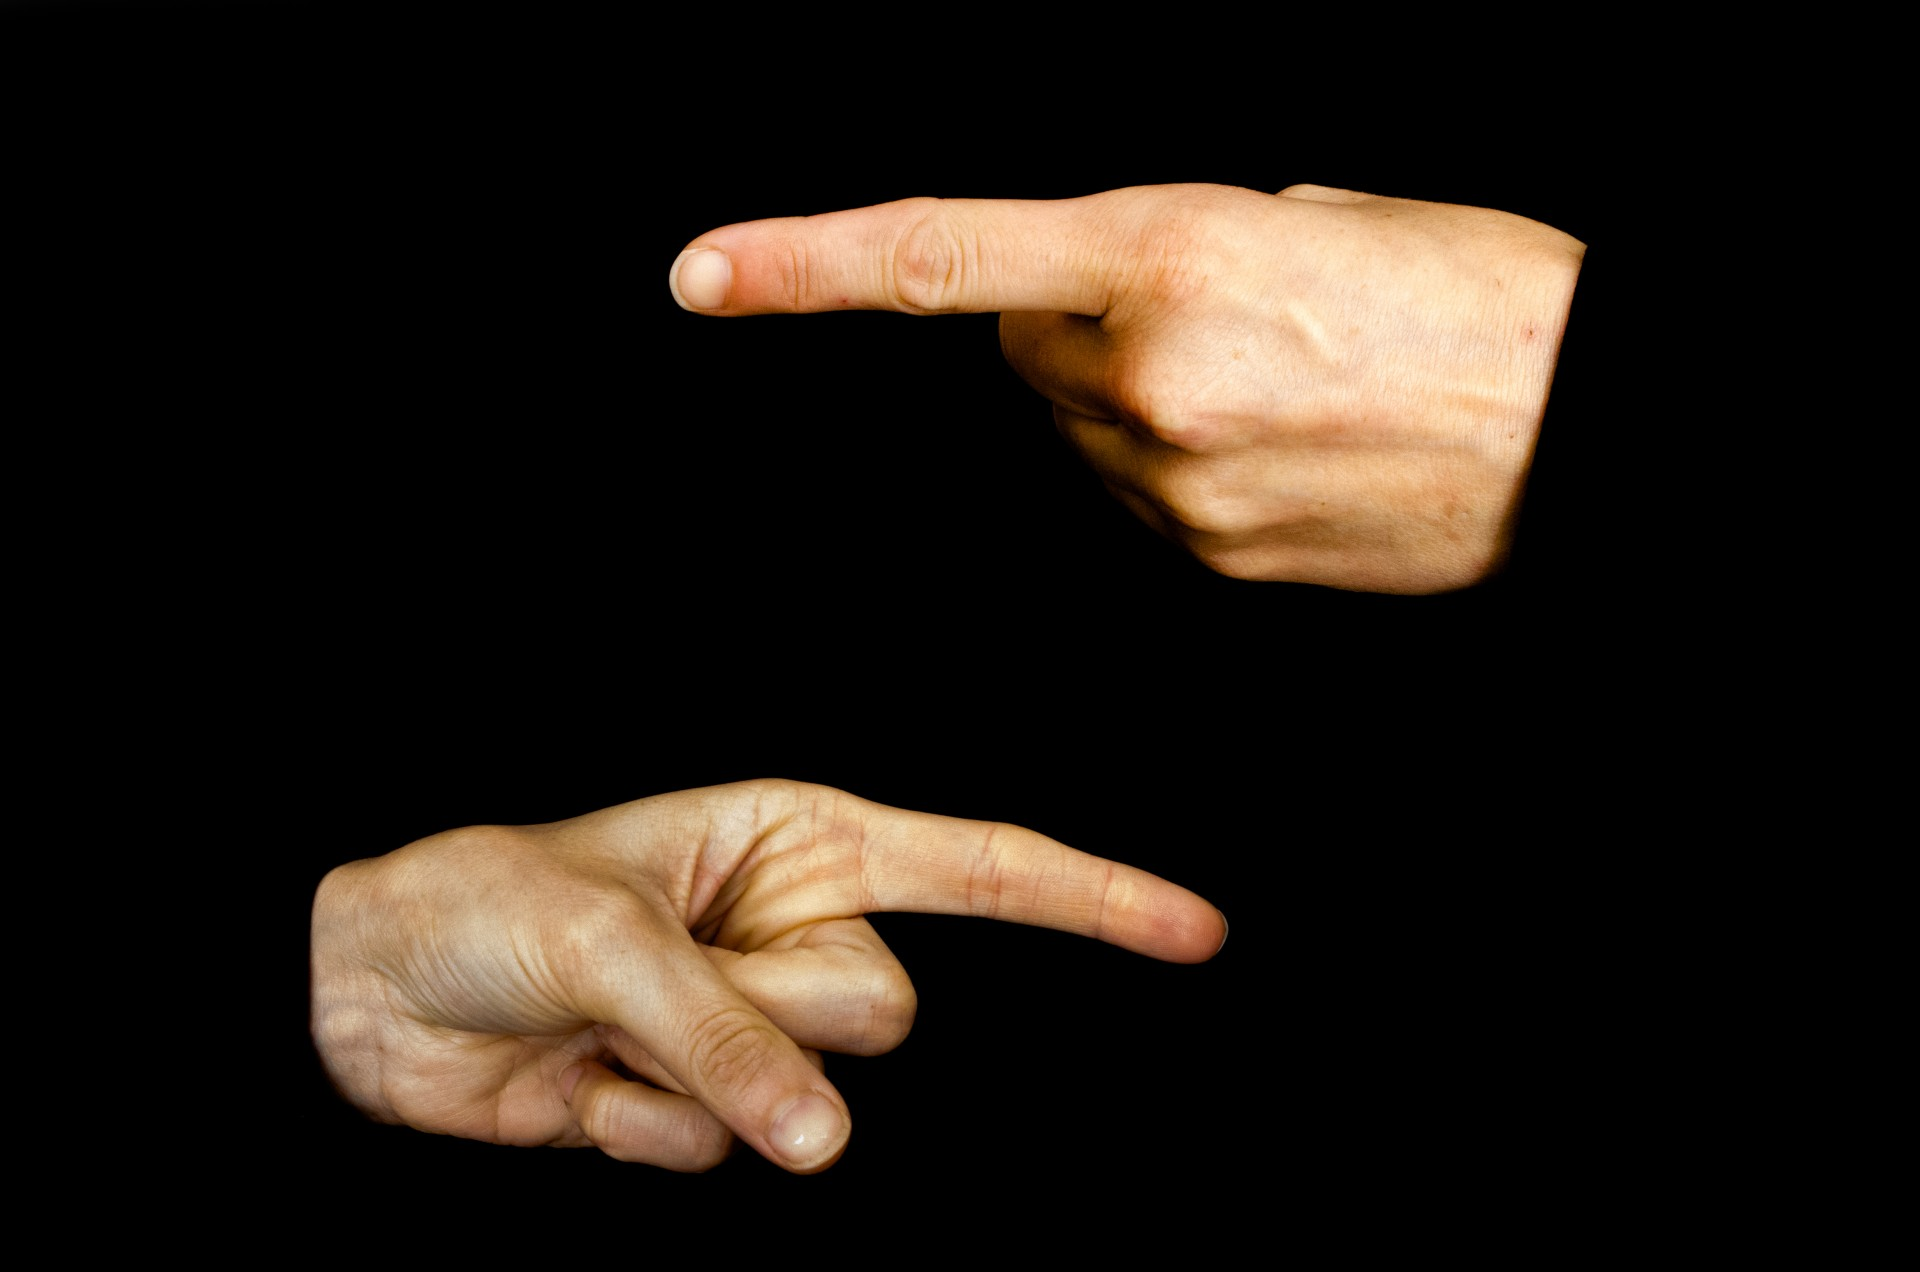 hand-with-pointing-finger